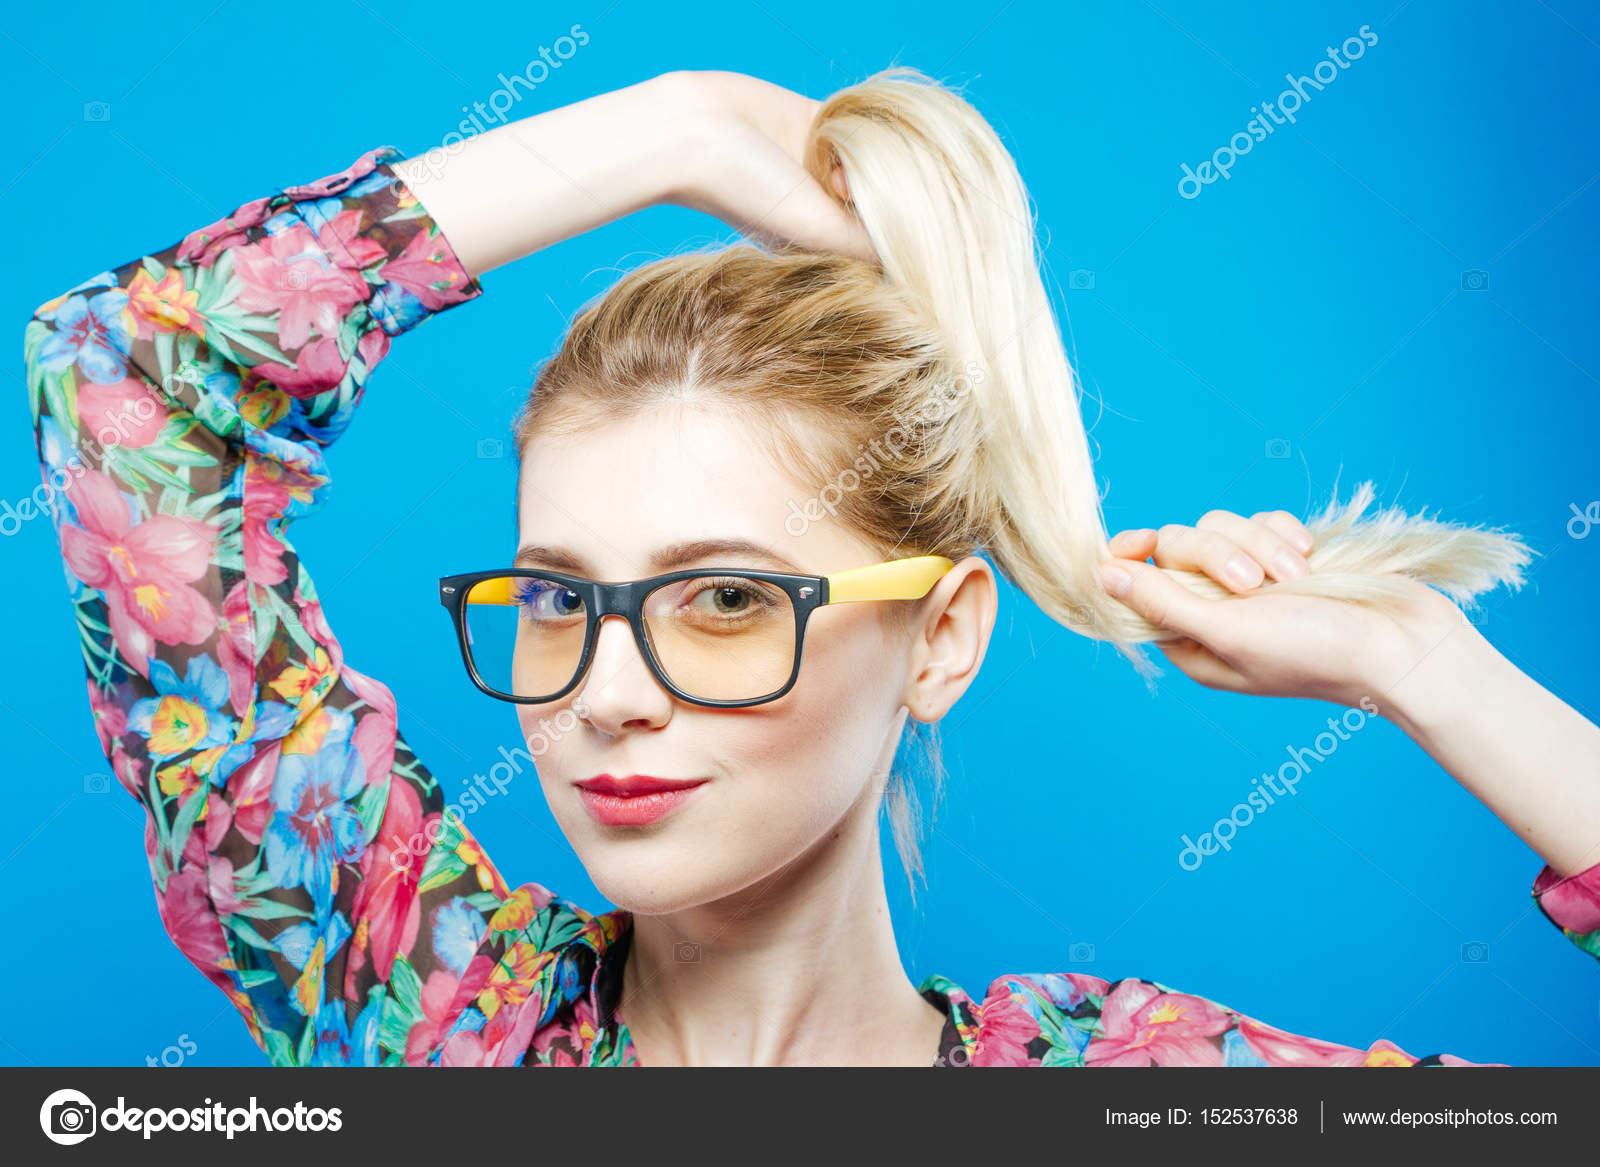 17e98226ce9 Sensual Cute Girl in Fashionable Eyeglasses is Posing in Studio Looking at  the Camera. Portrait